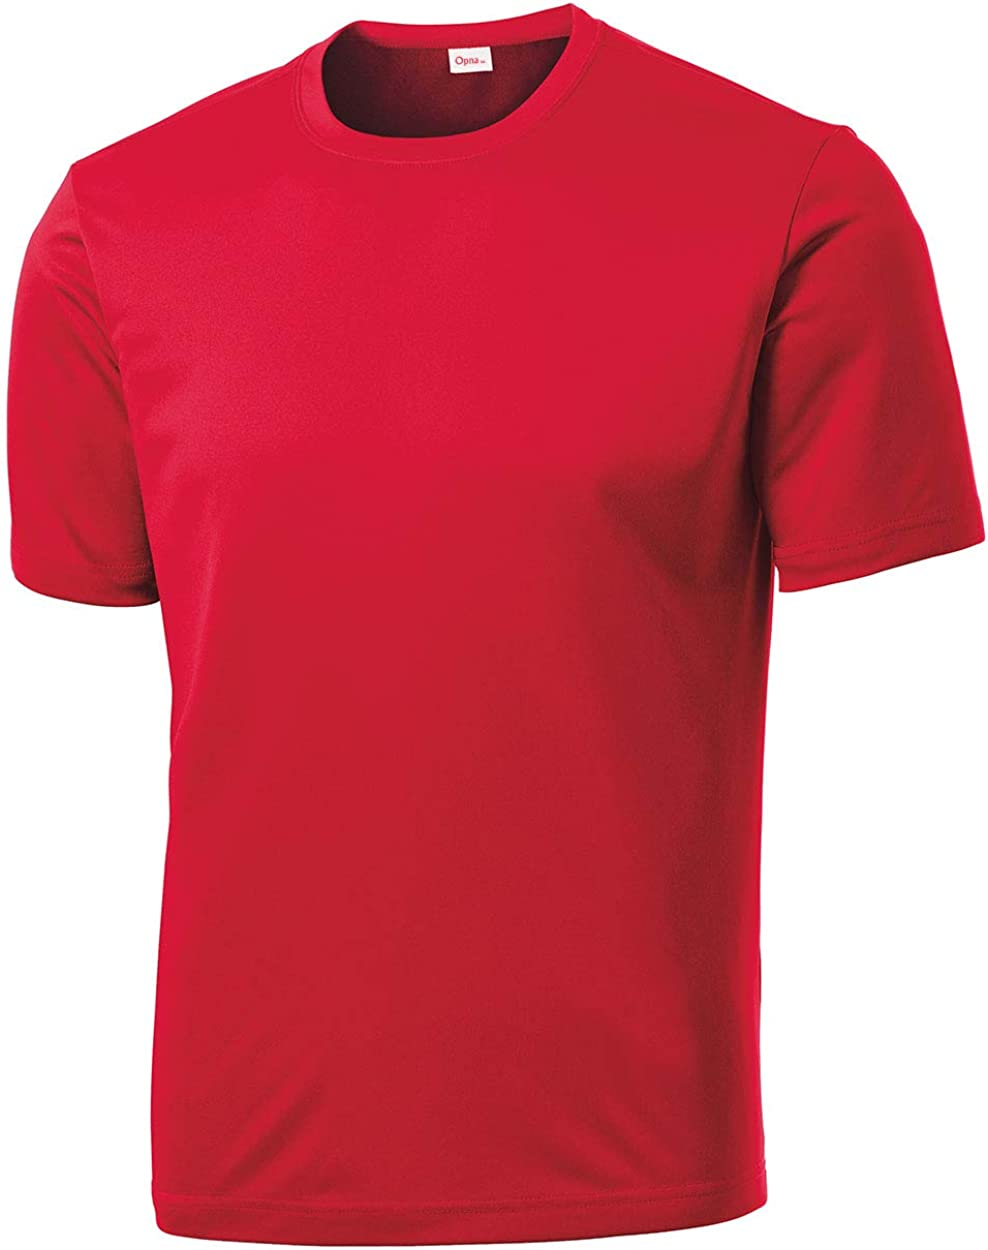 Opna Mens Big /& Tall Short Sleeve Moisture Wicking Athletic T-Shirts Regular Sizes /& XLTs